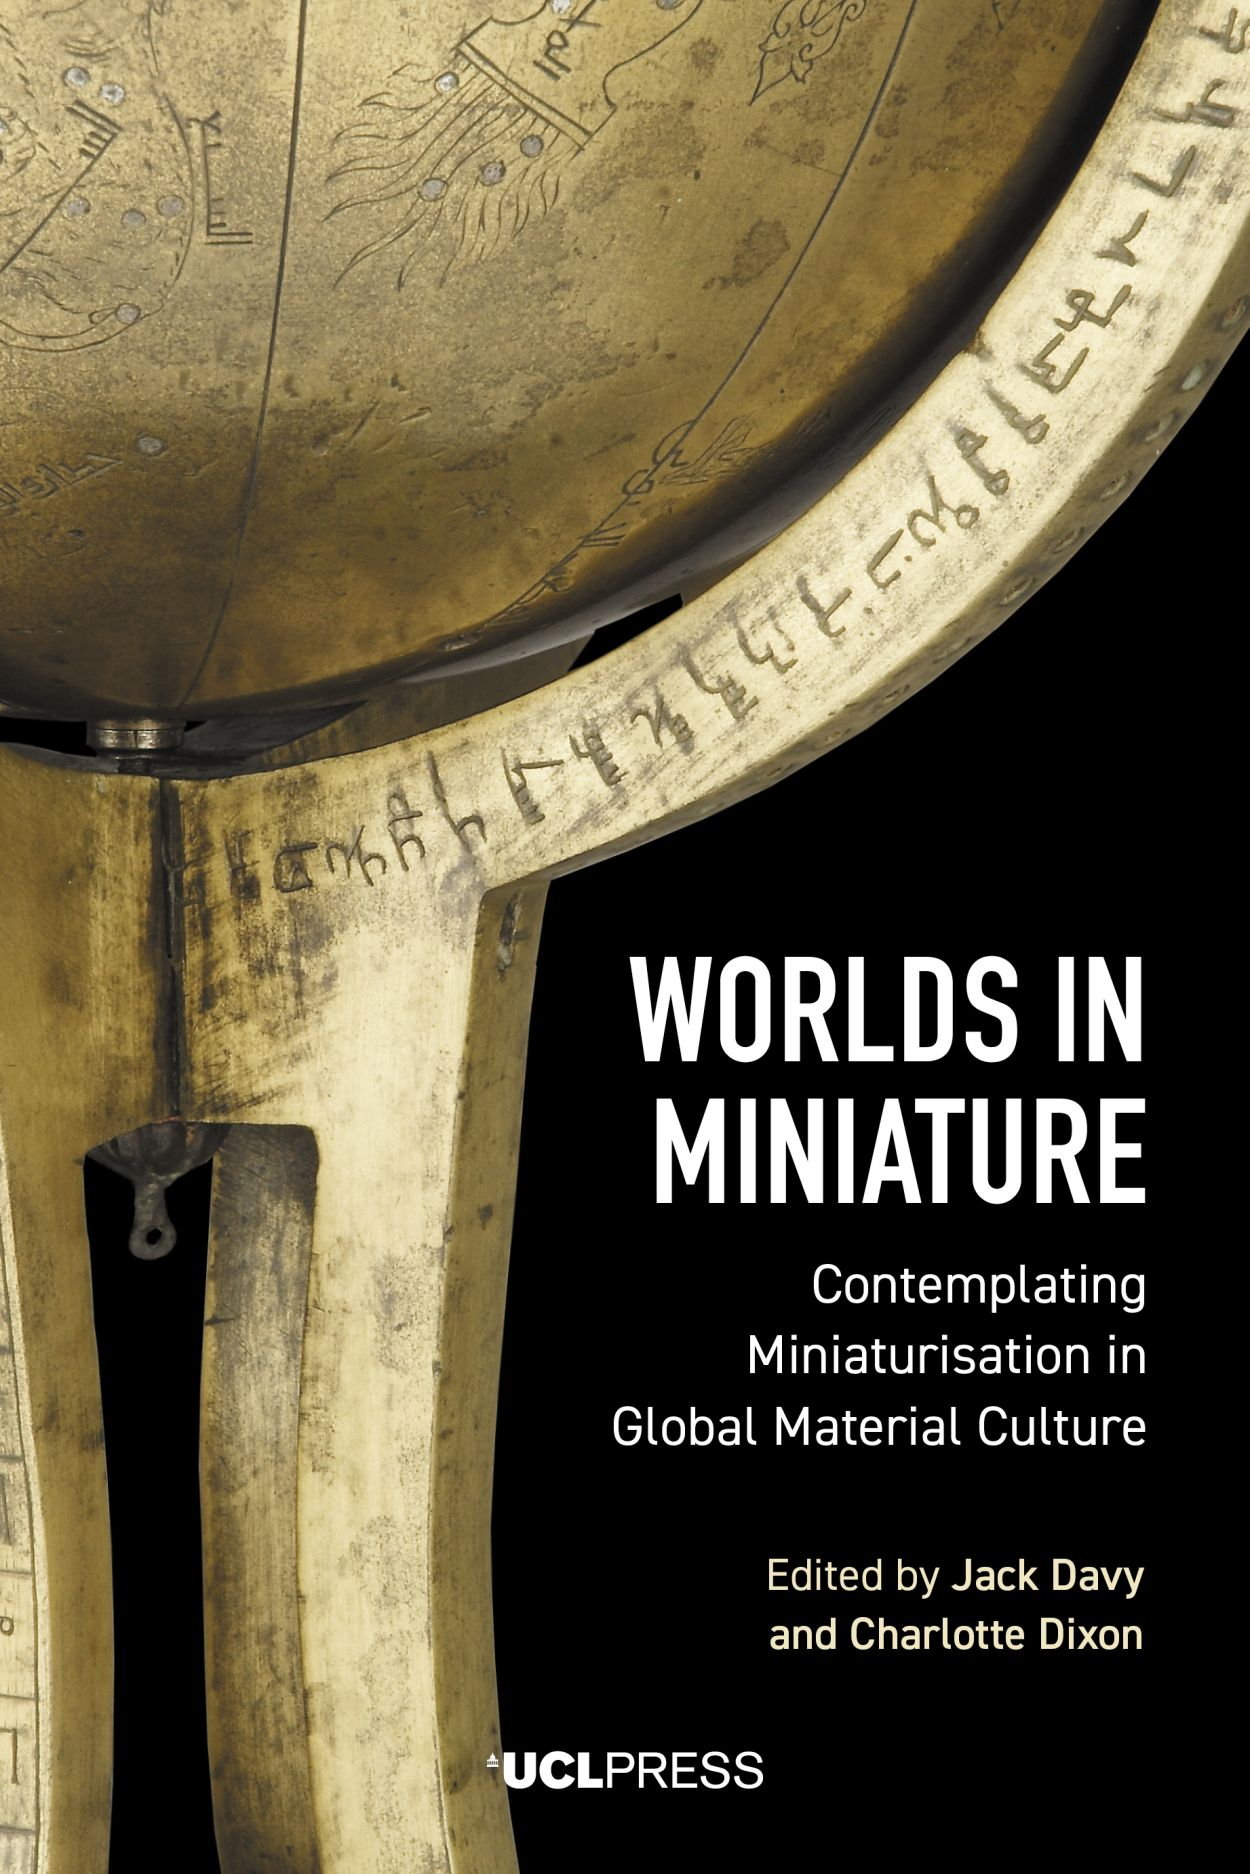 Worlds in Miniature: Contemplating Miniaturisation in Global Material Culture